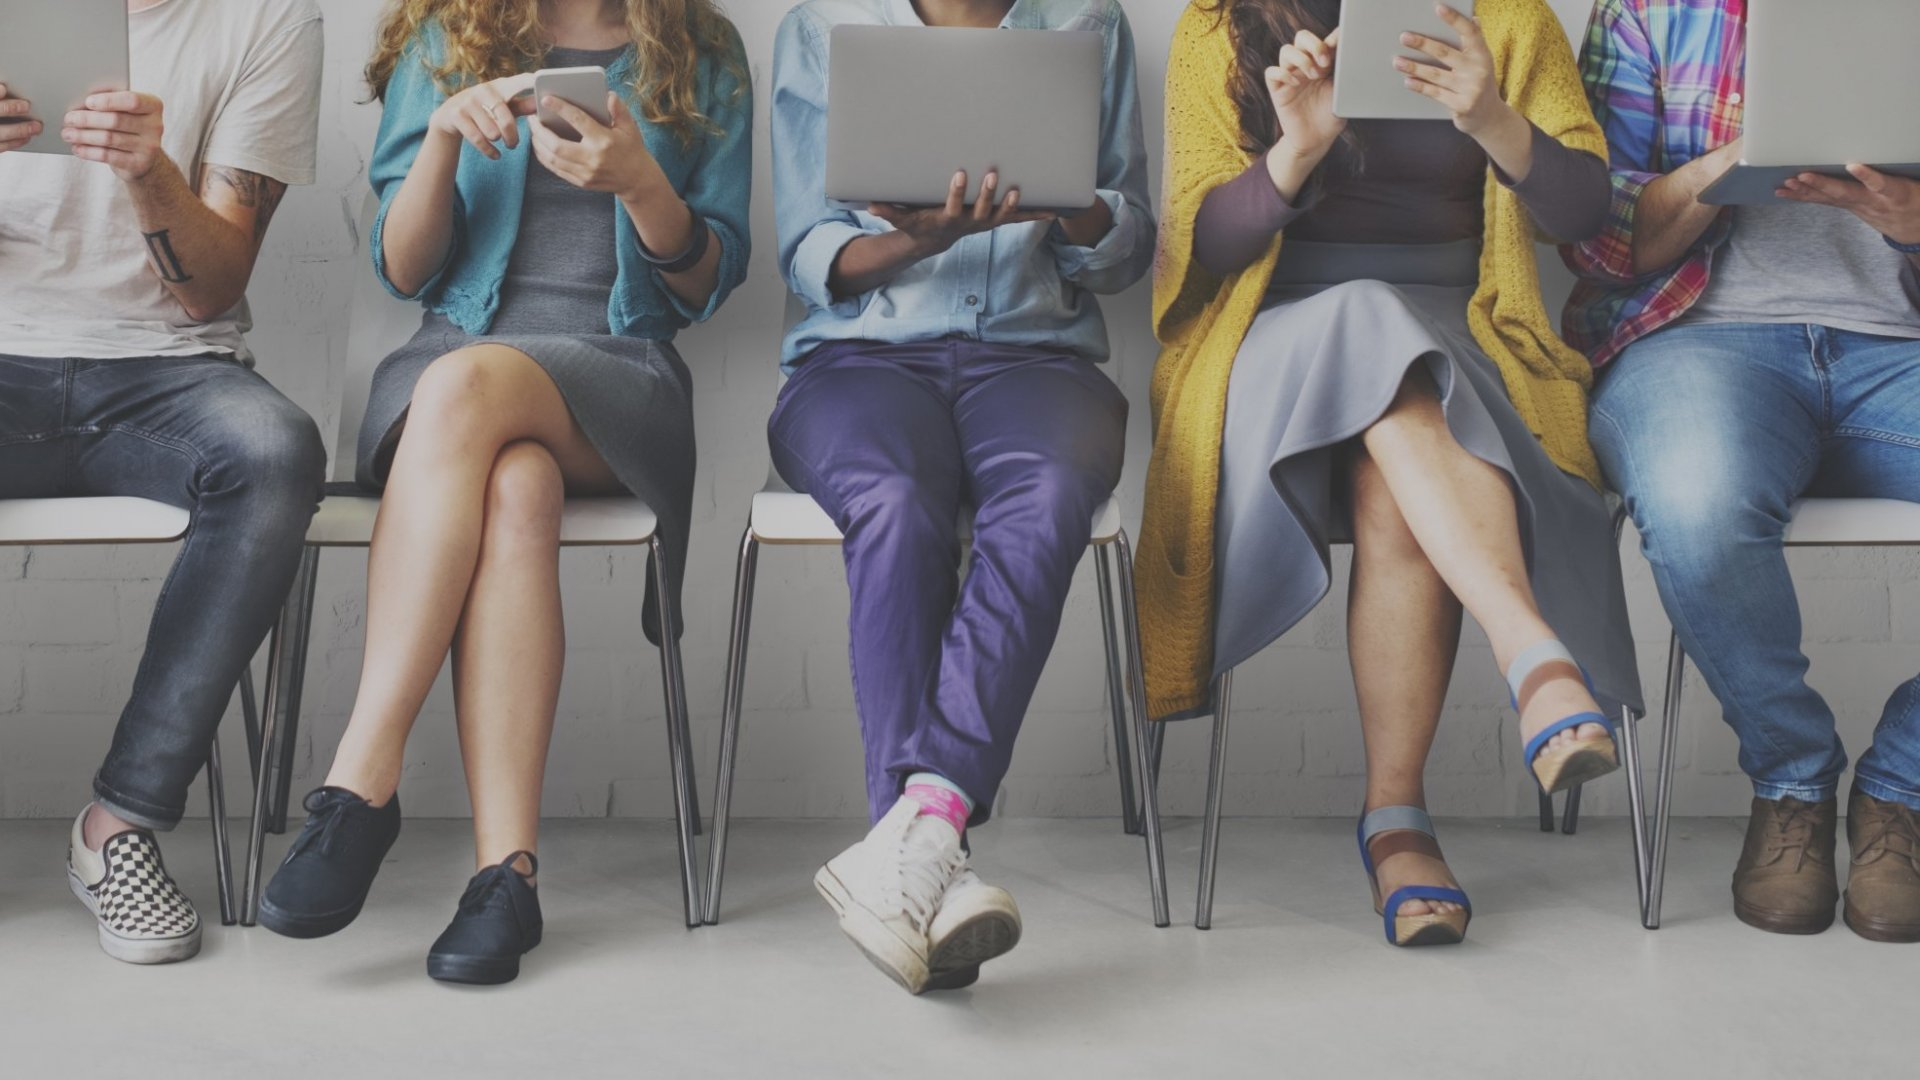 Top 4 Ways for CMOs to Build Engagement With Gen Z